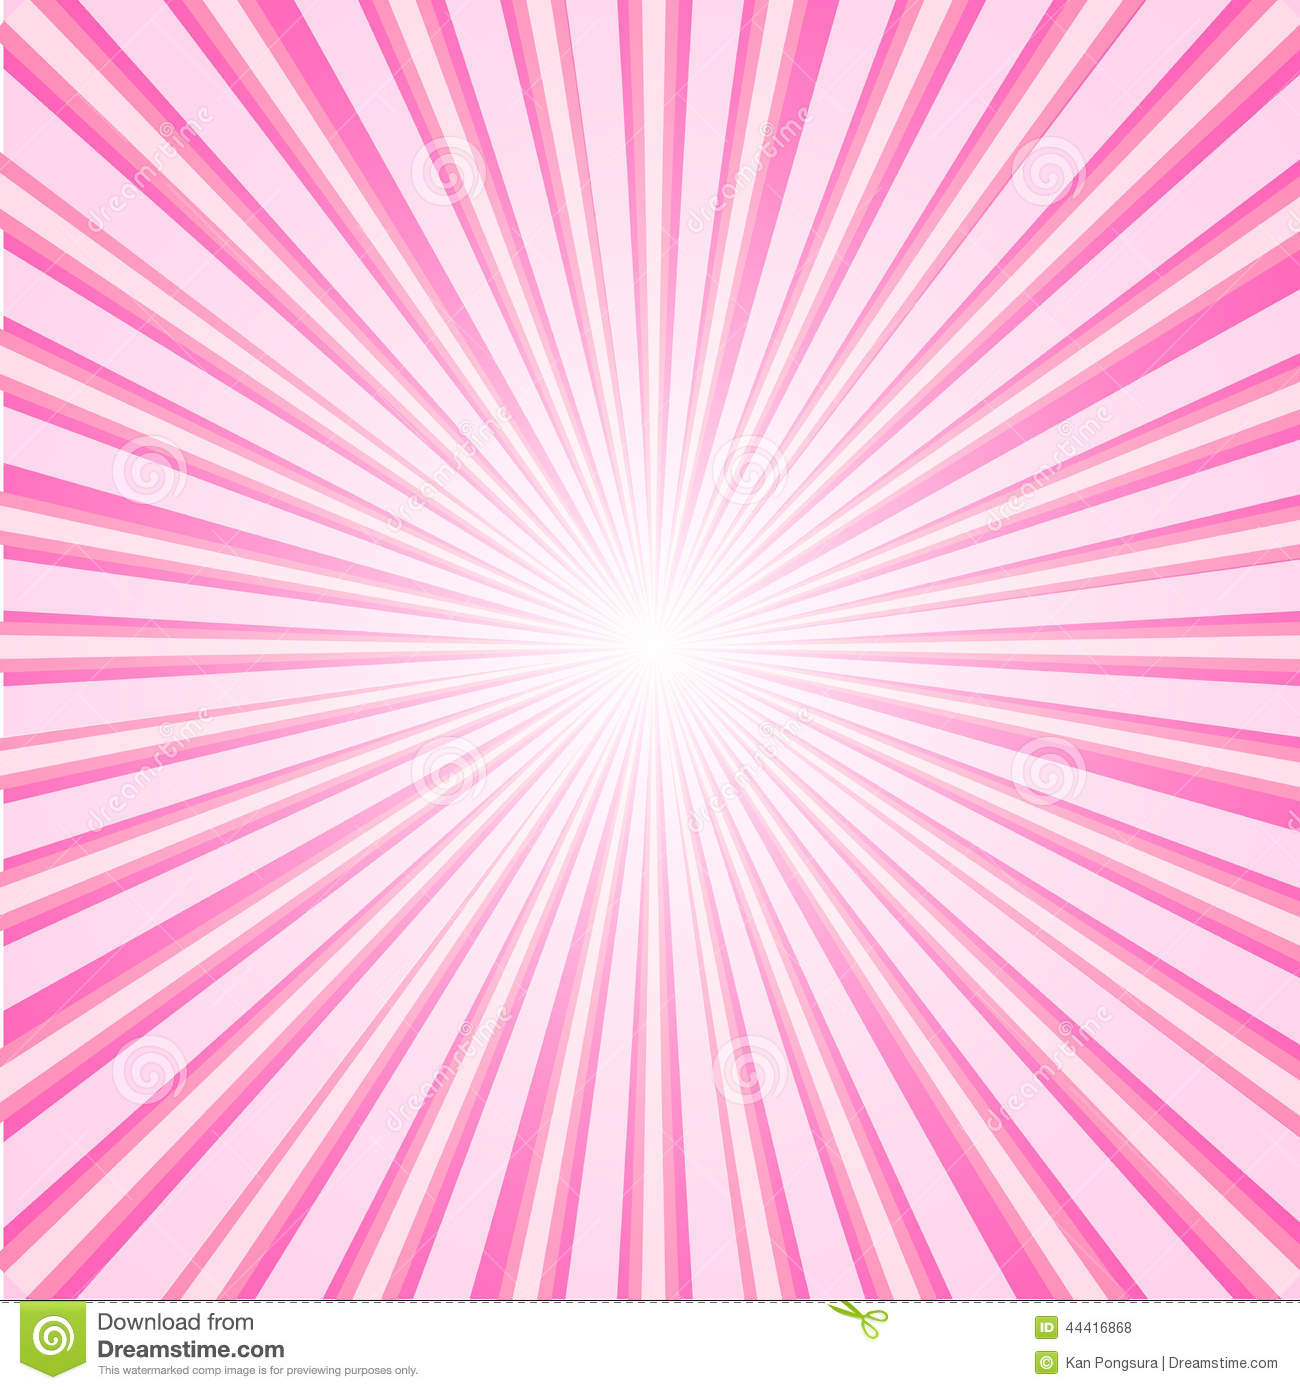 Sun Ray Abstract Design Stock Vector - Image: 44416868